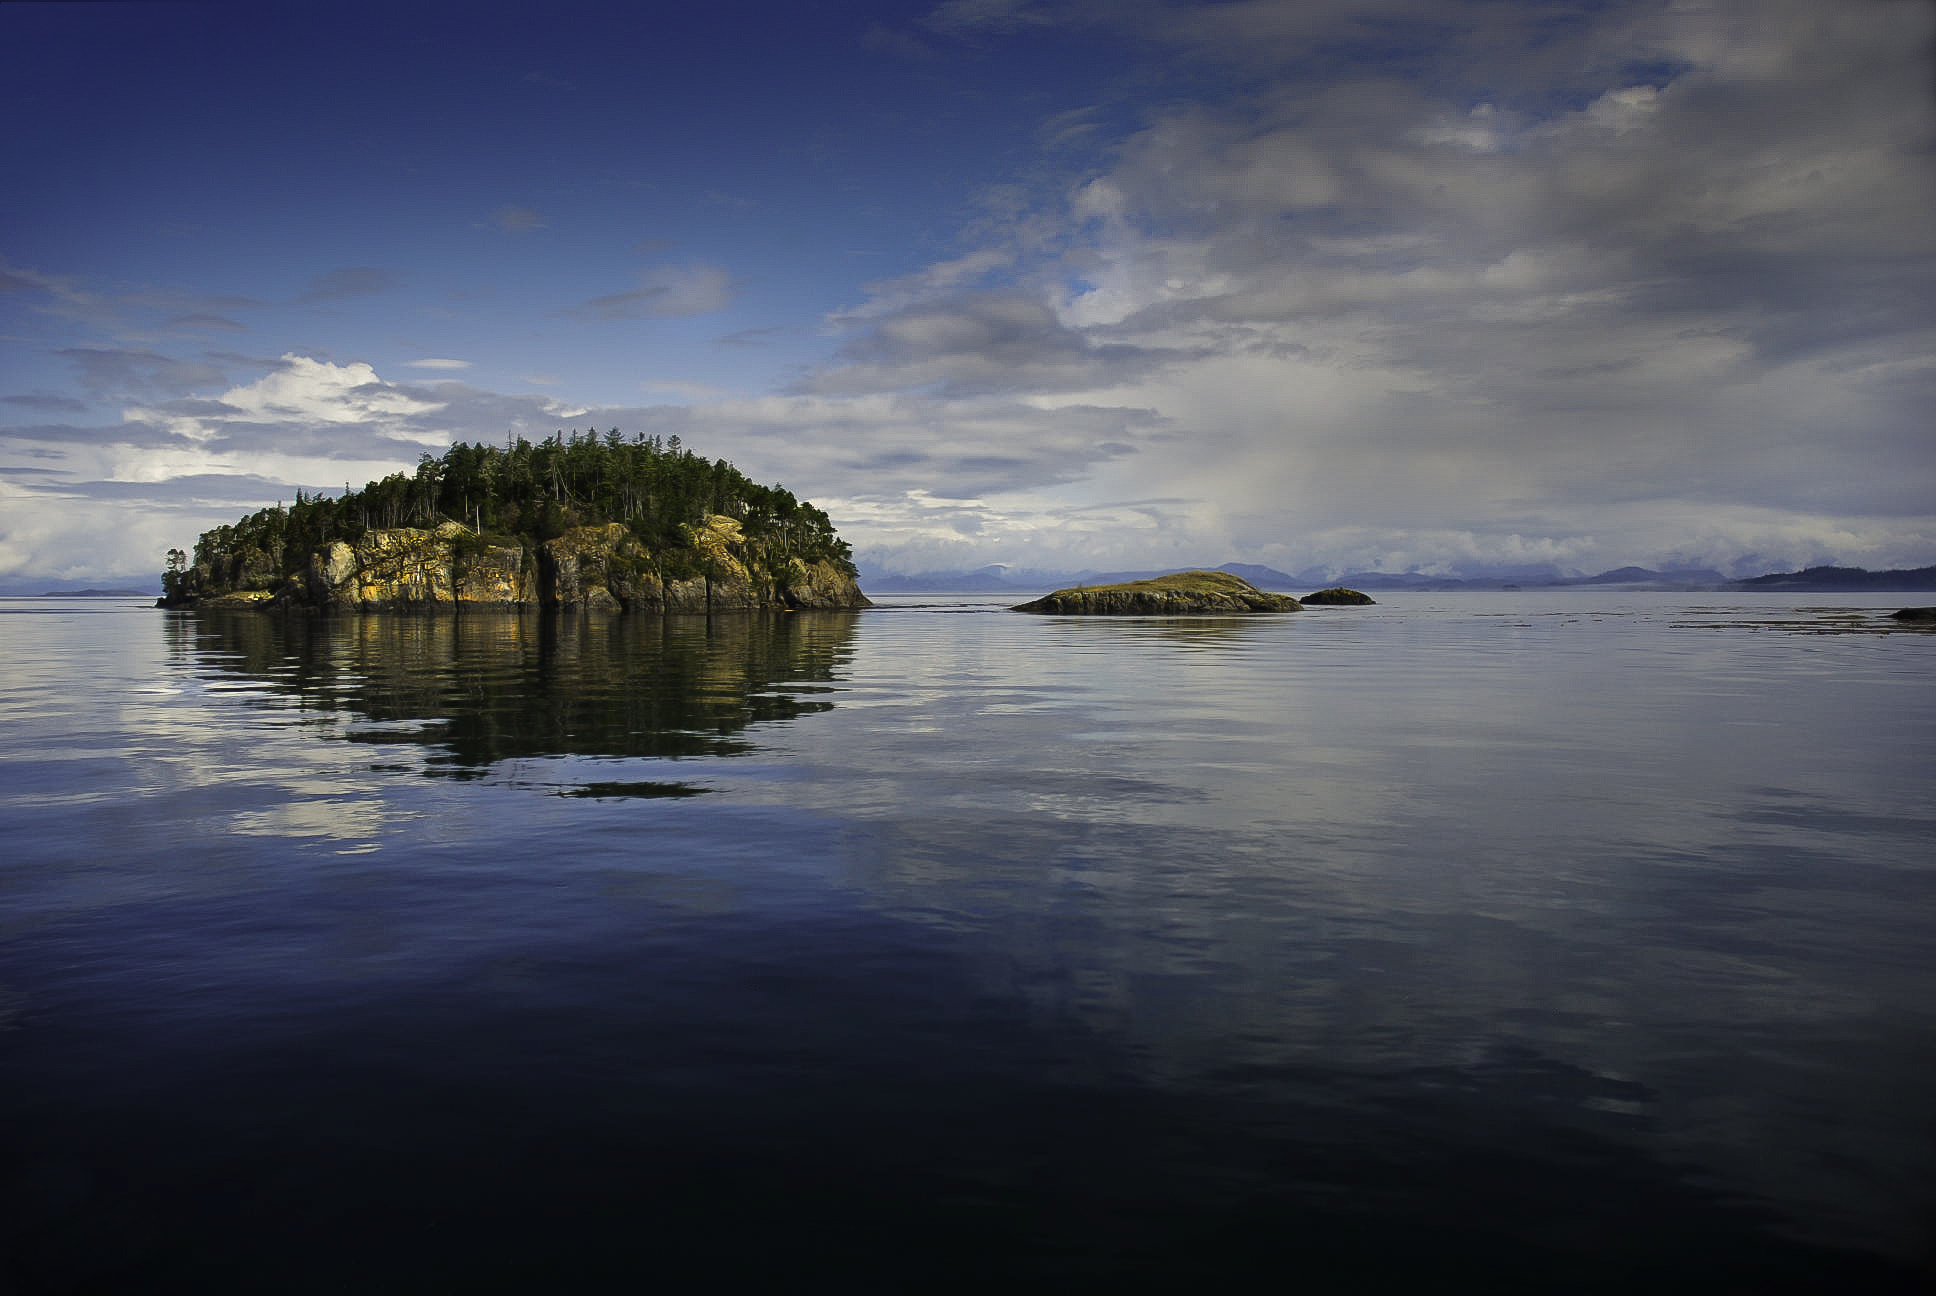 Photograph Island off Port Mcneill by Walter Assmus on 500px